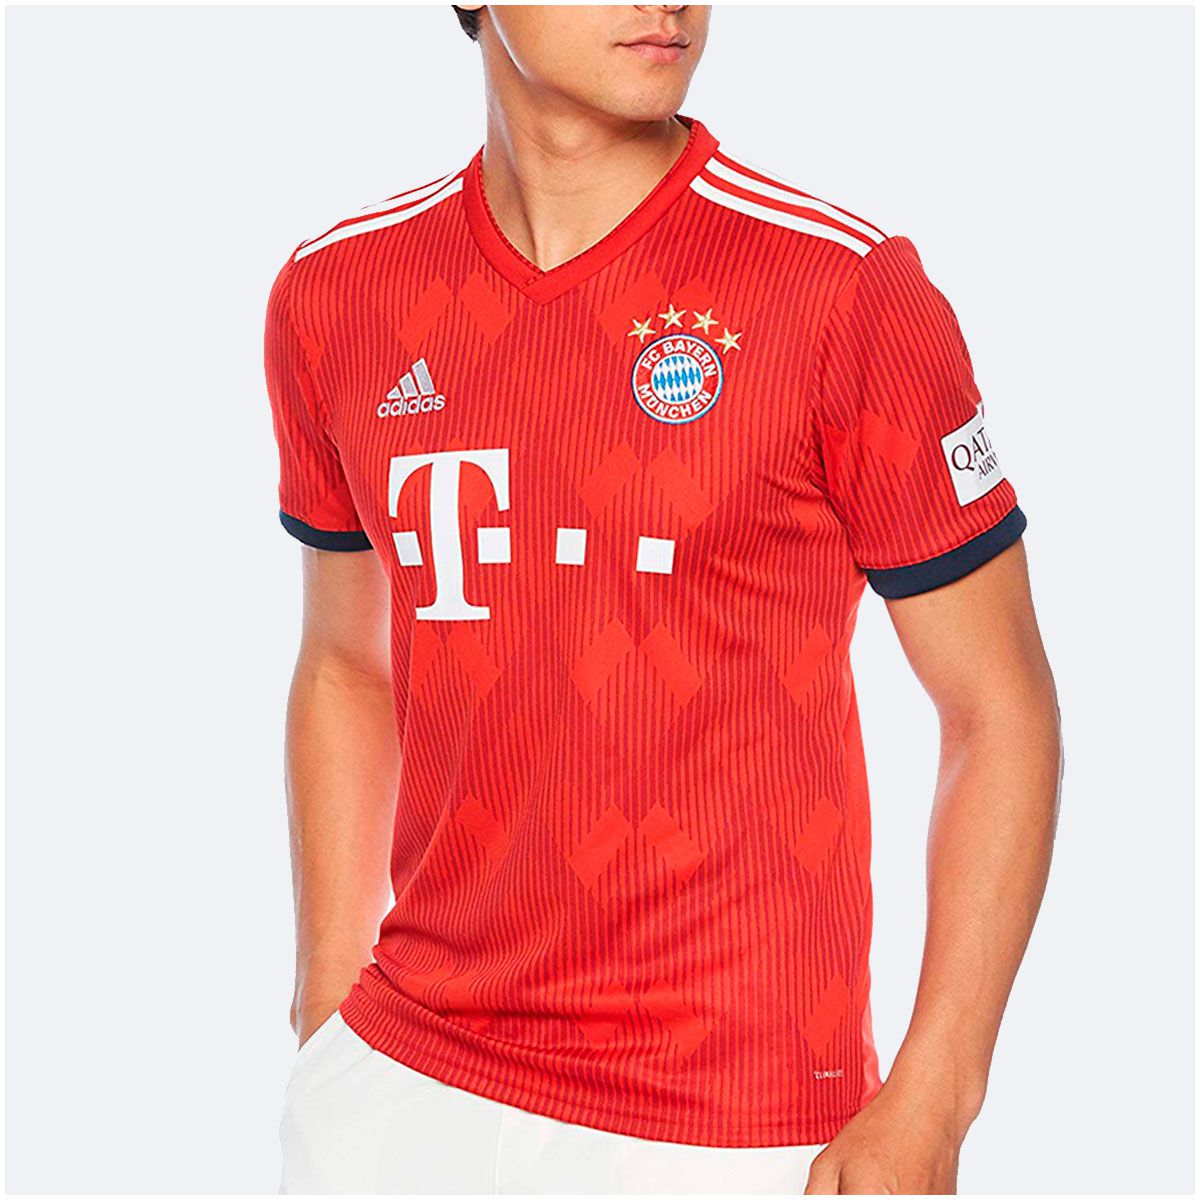 25a3a073f3 Camisa Bayern de Munique Home Adidas 2018